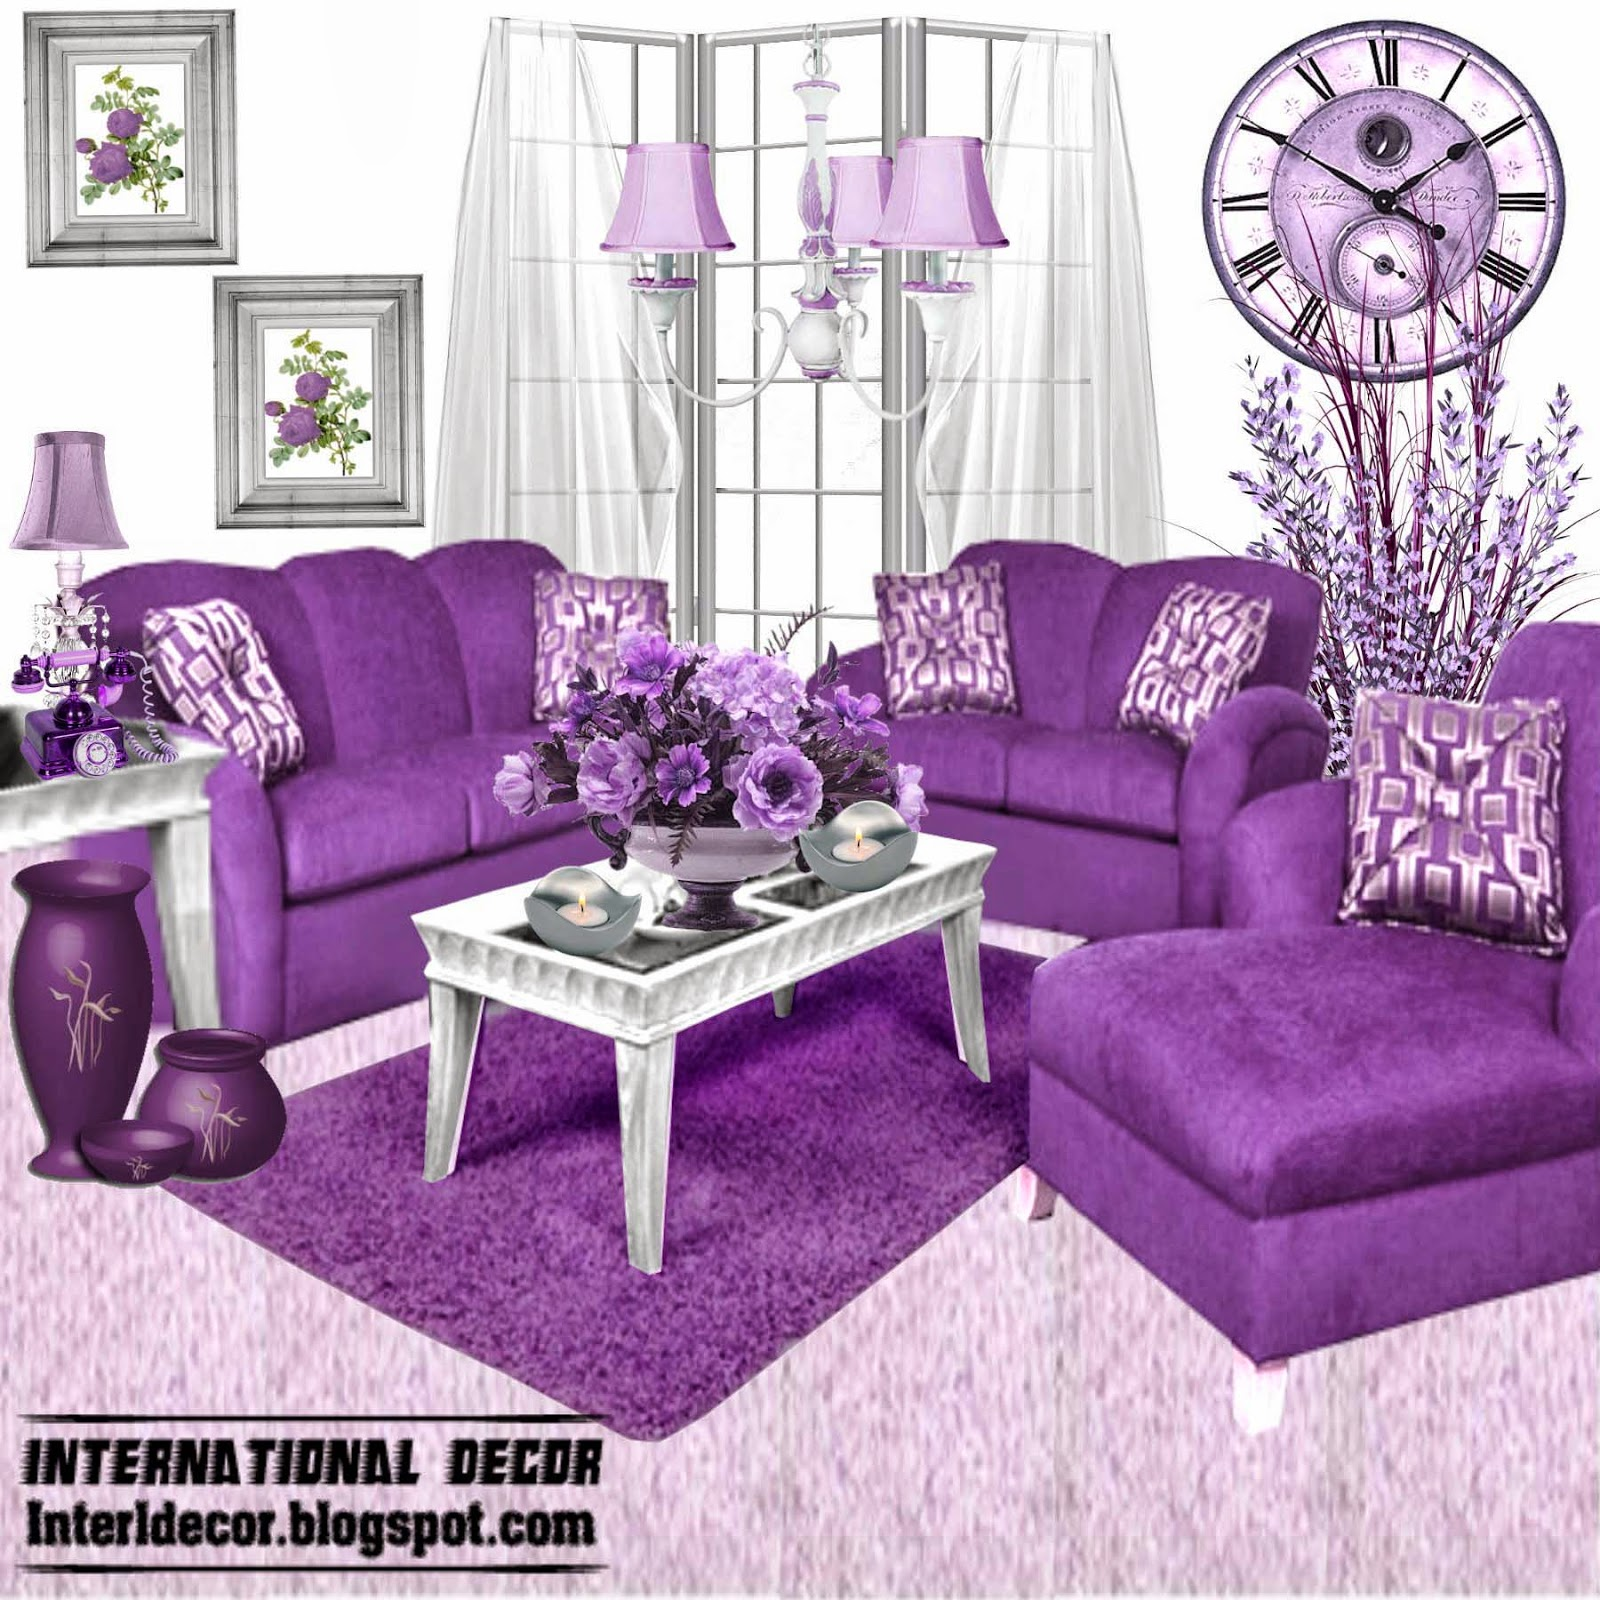 Purple furniture for the home pinterest purple for Sofa and 2 chairs living room